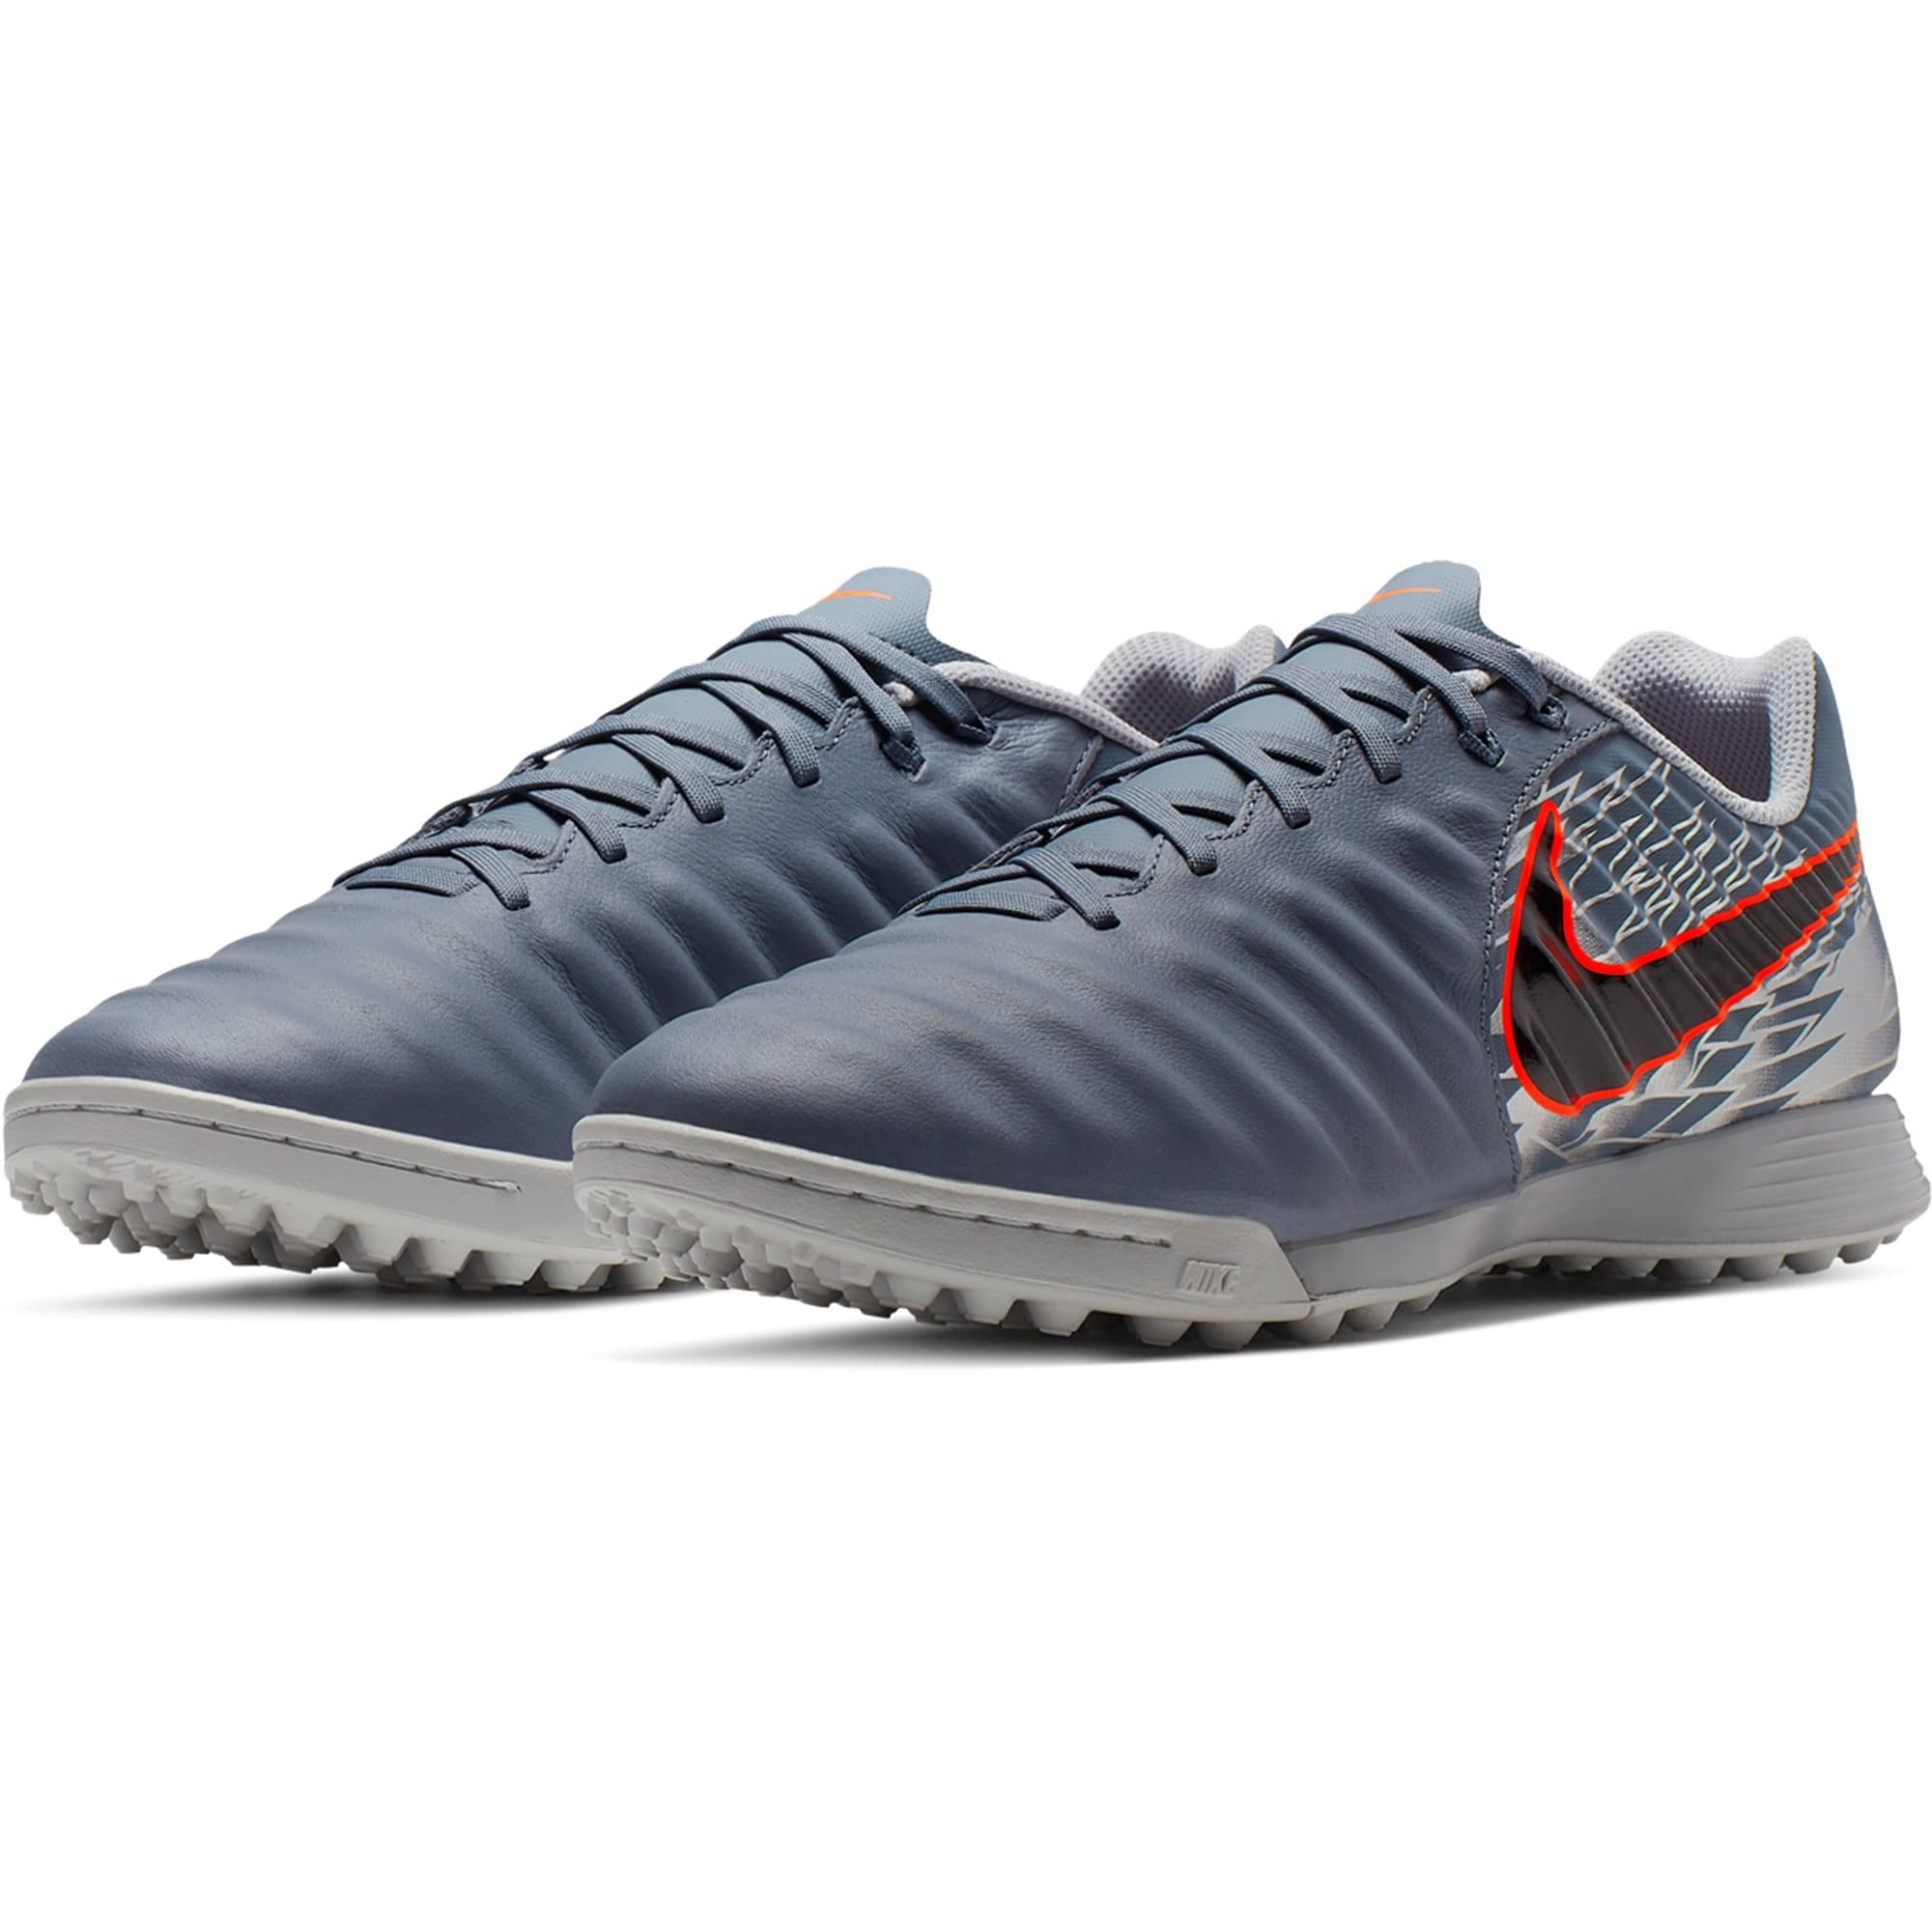 huge discount 2459a a02d2 Nike Tiempo Legend VII Academy TF Soccer Shoe - Armory Blue / Black / Hyper  Crimson / Metallic Silver / Wolf Grey